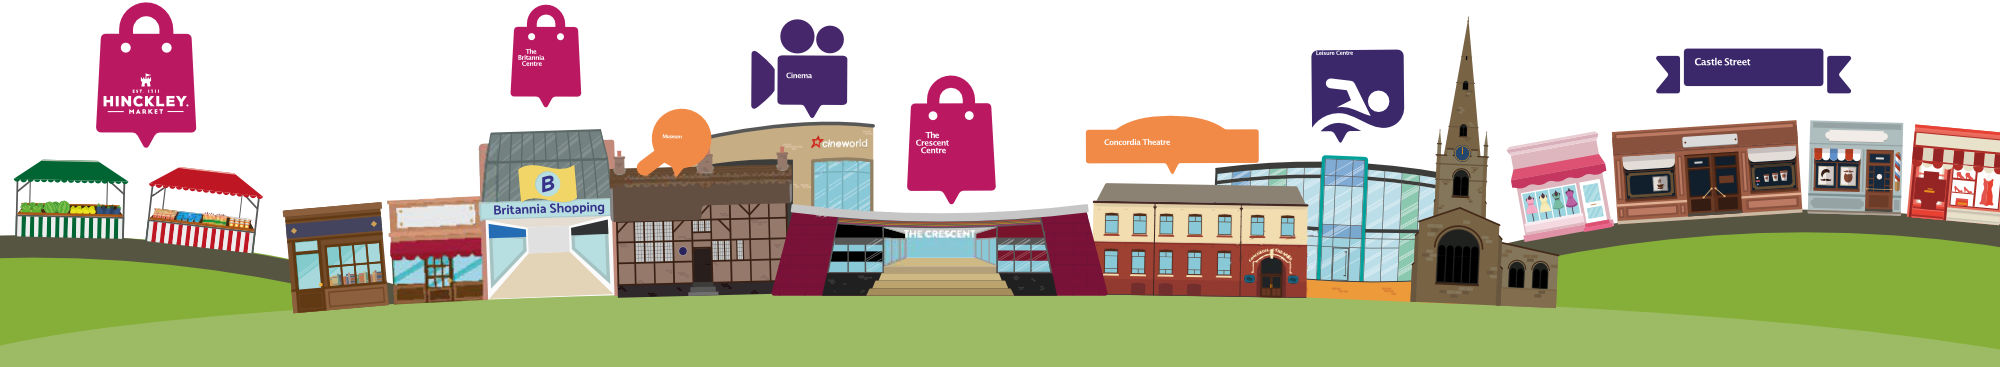 A graphic of a range of Hinckley shops, venues and businesses